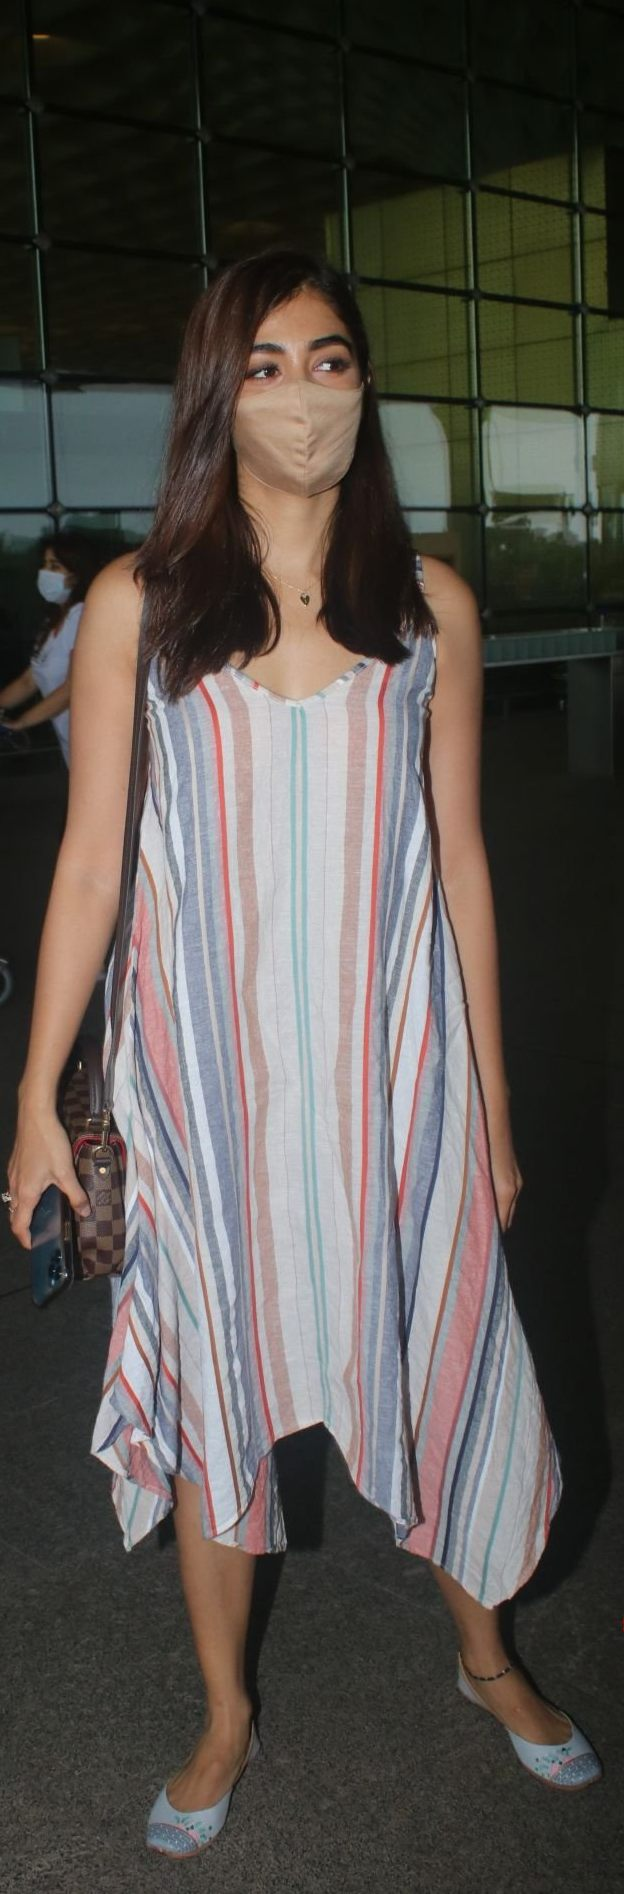 Pooja hegde in a striped dress at the airport